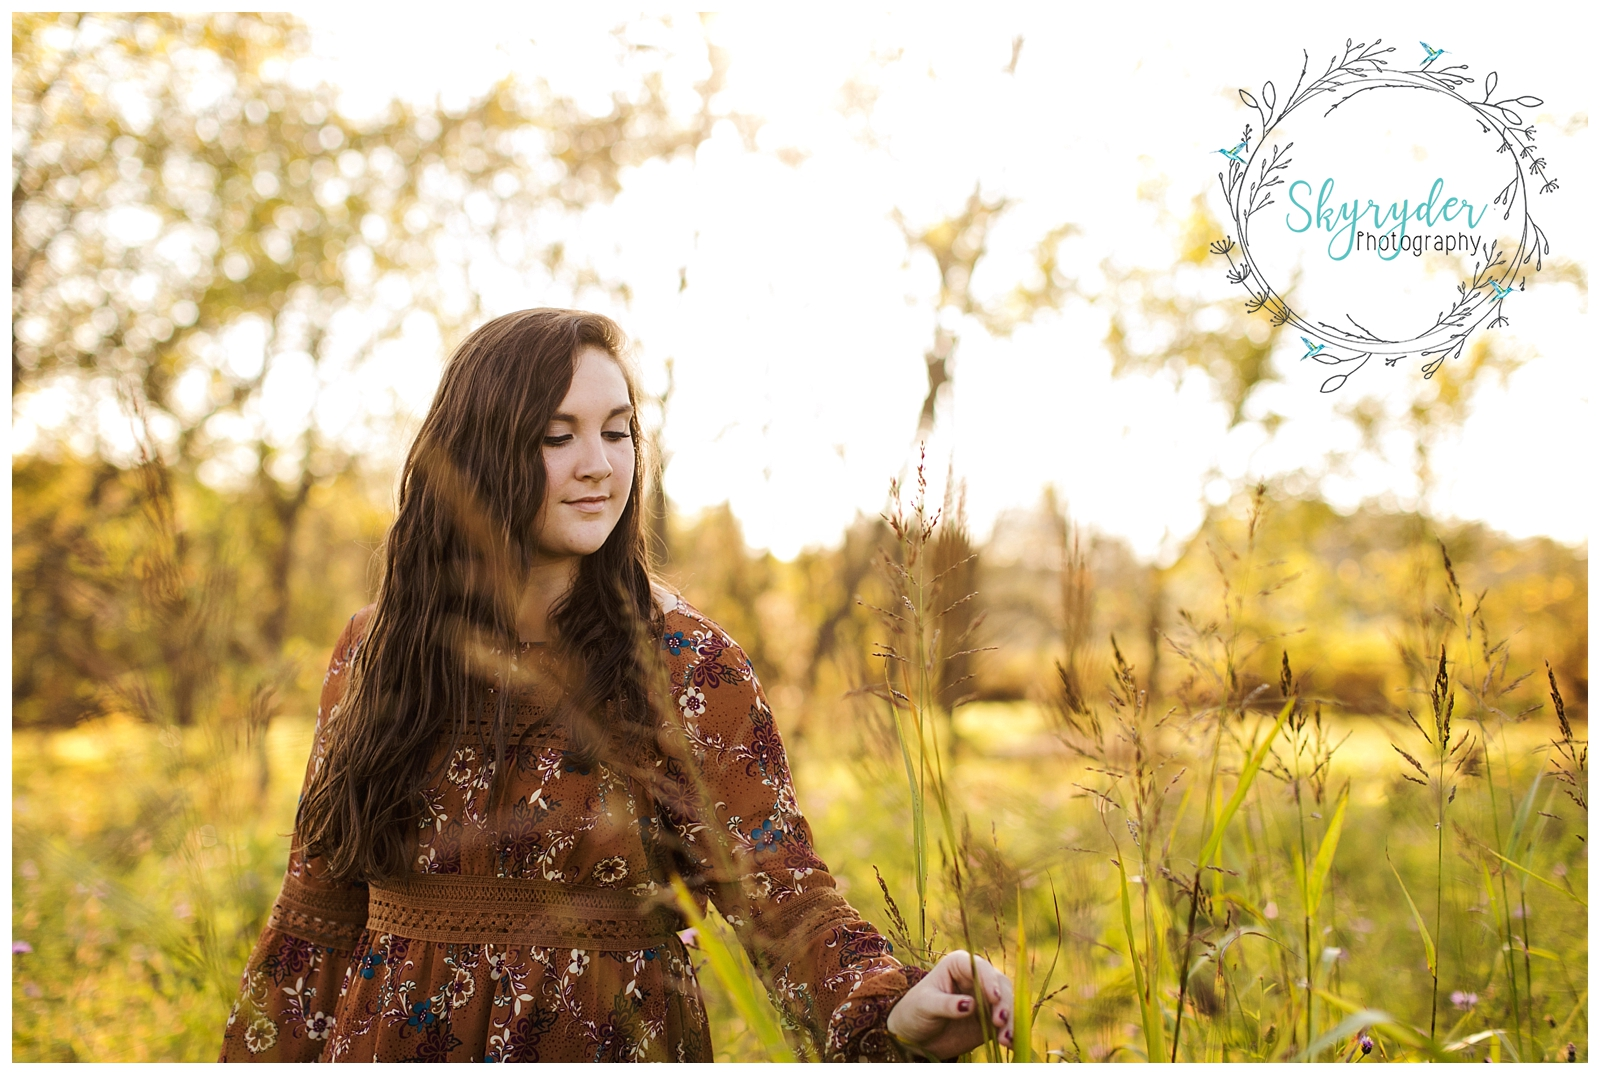 Beth | Blacksburg High School Senior Photographer